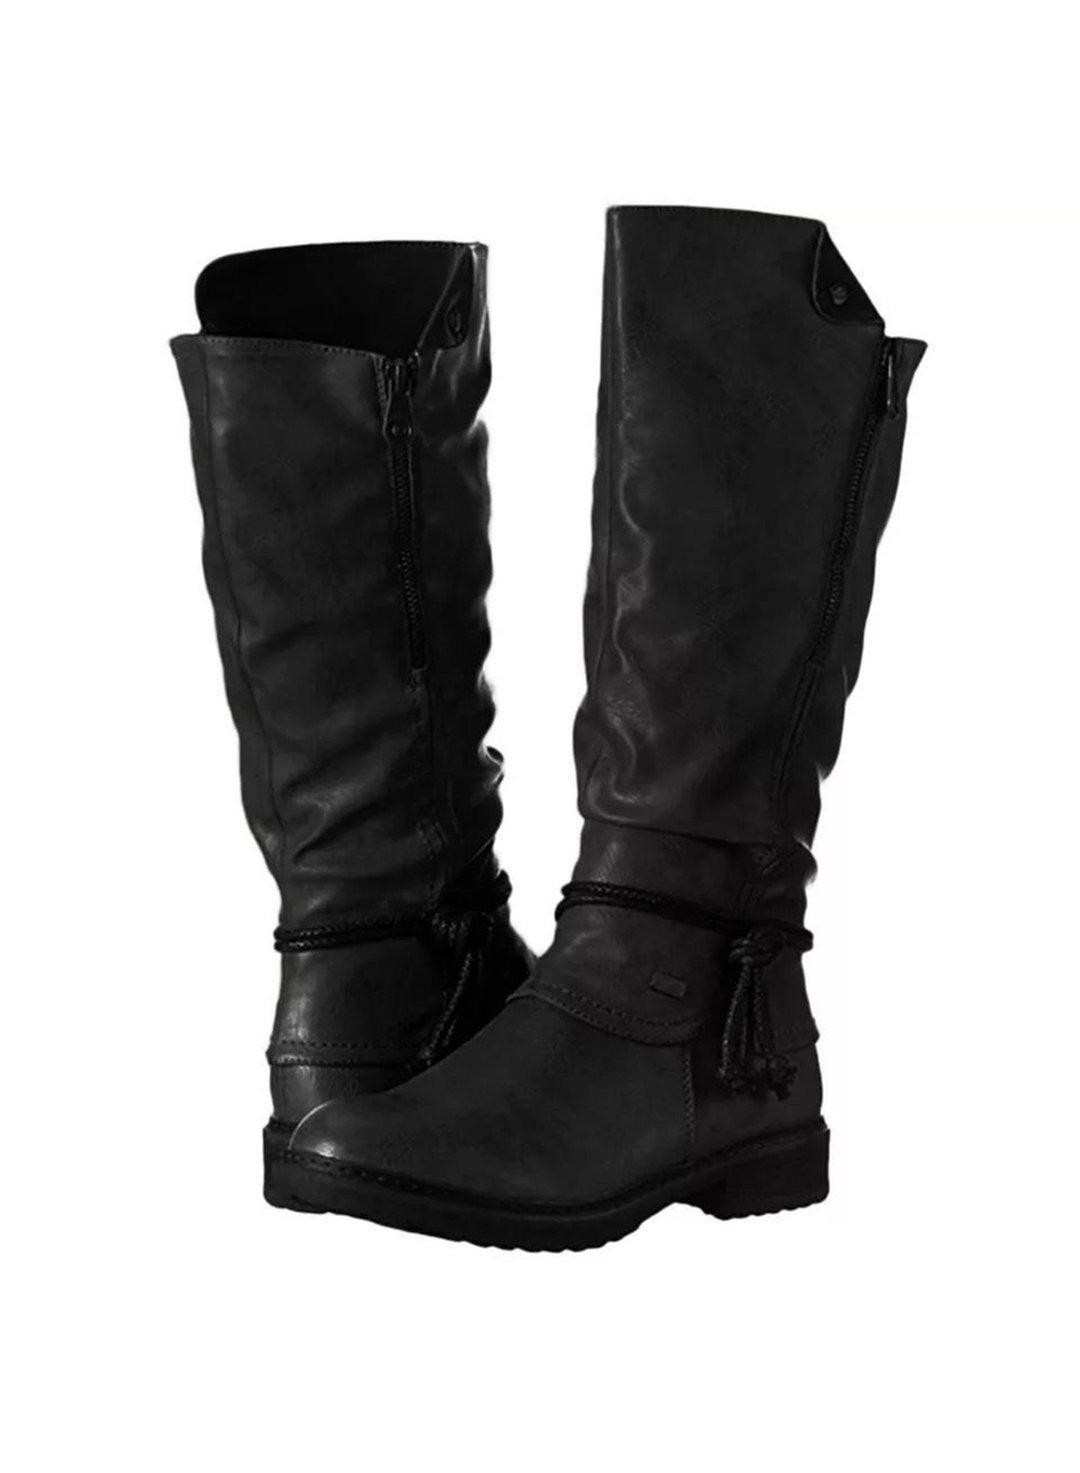 Black Low heels Round Heads High Boots LC12298-2